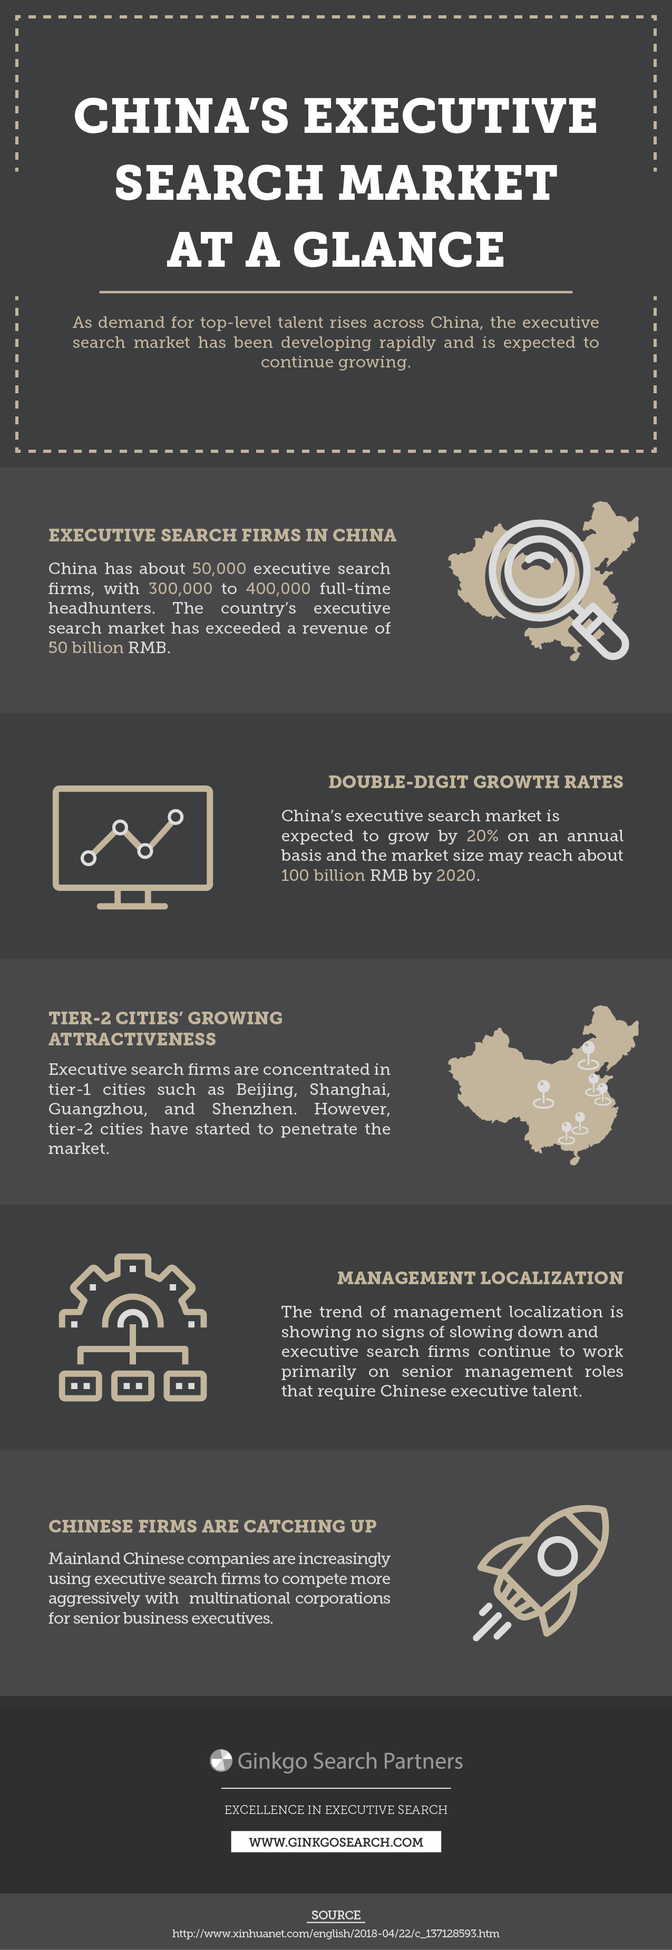 Executive-Search-Industry-China-Infographic